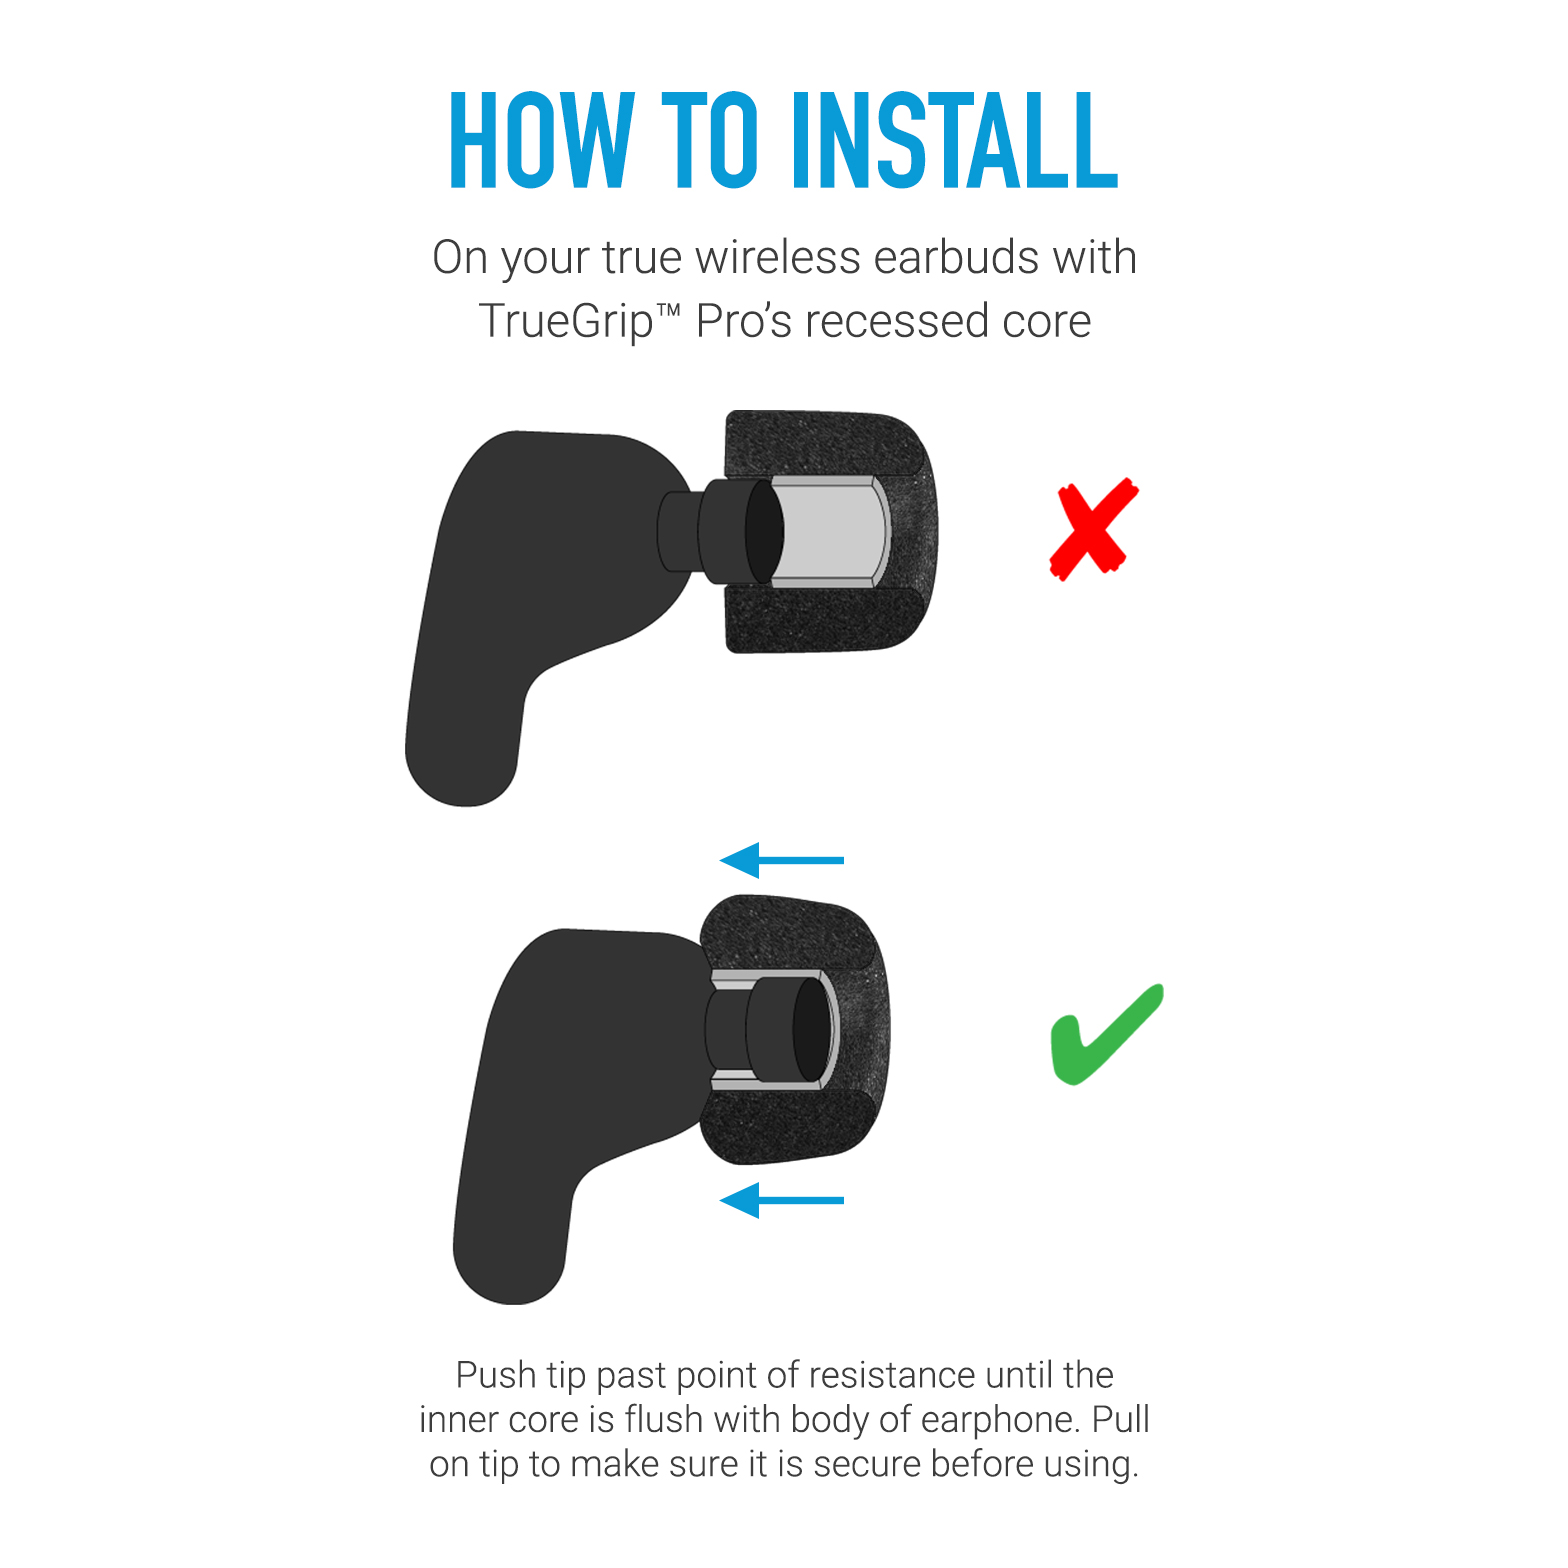 How to Install TrueGrip Pro for Jabra, JBL, RHA, Sennheiser, Samsung, Sony